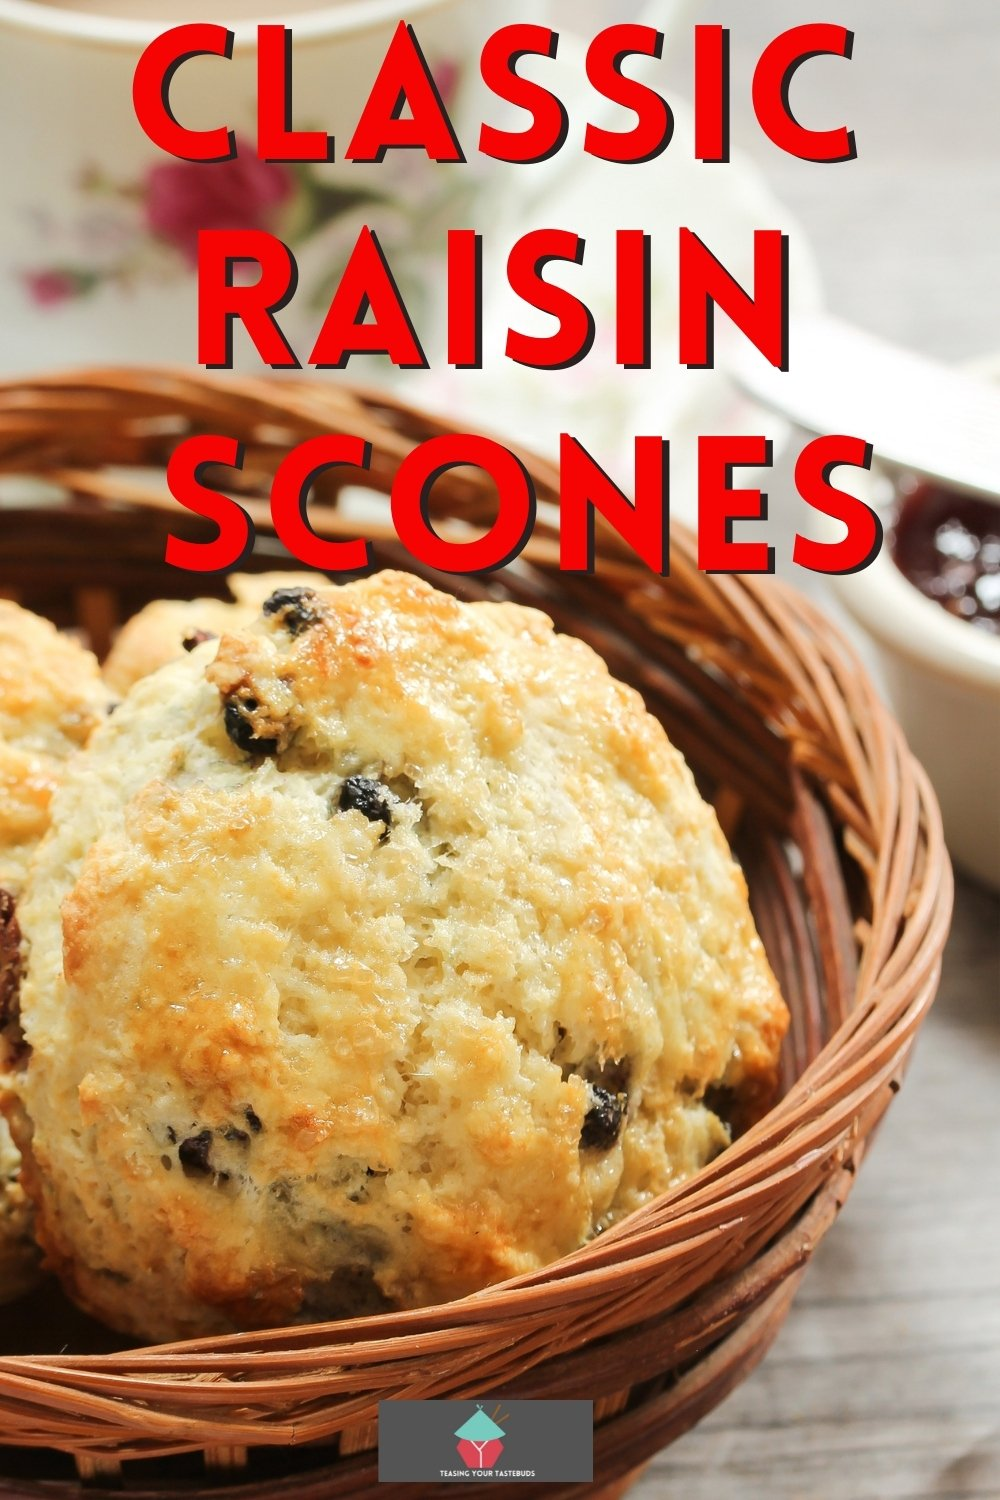 Classic raisin scones, perfect served with an afternoon tea. Eat with butter, clotted cream, and jam. Easy recipe to give you fluffy, well-risen moist scones.